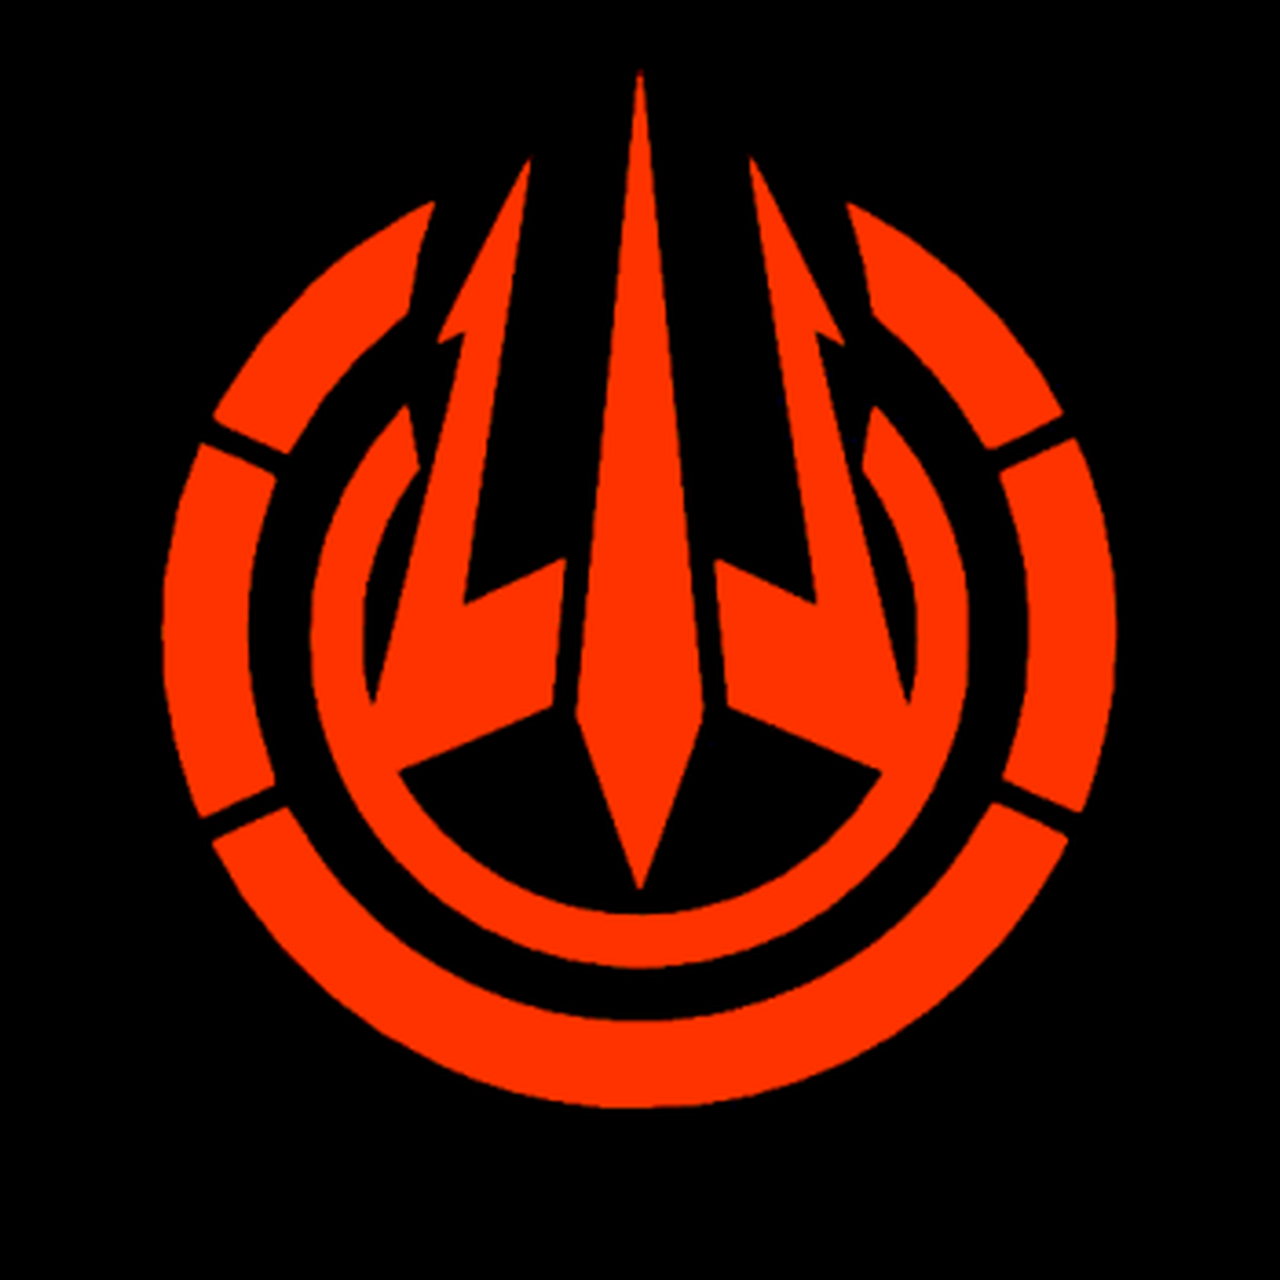 Call Of Duty Black Ops 3 Trident Logo Decal.